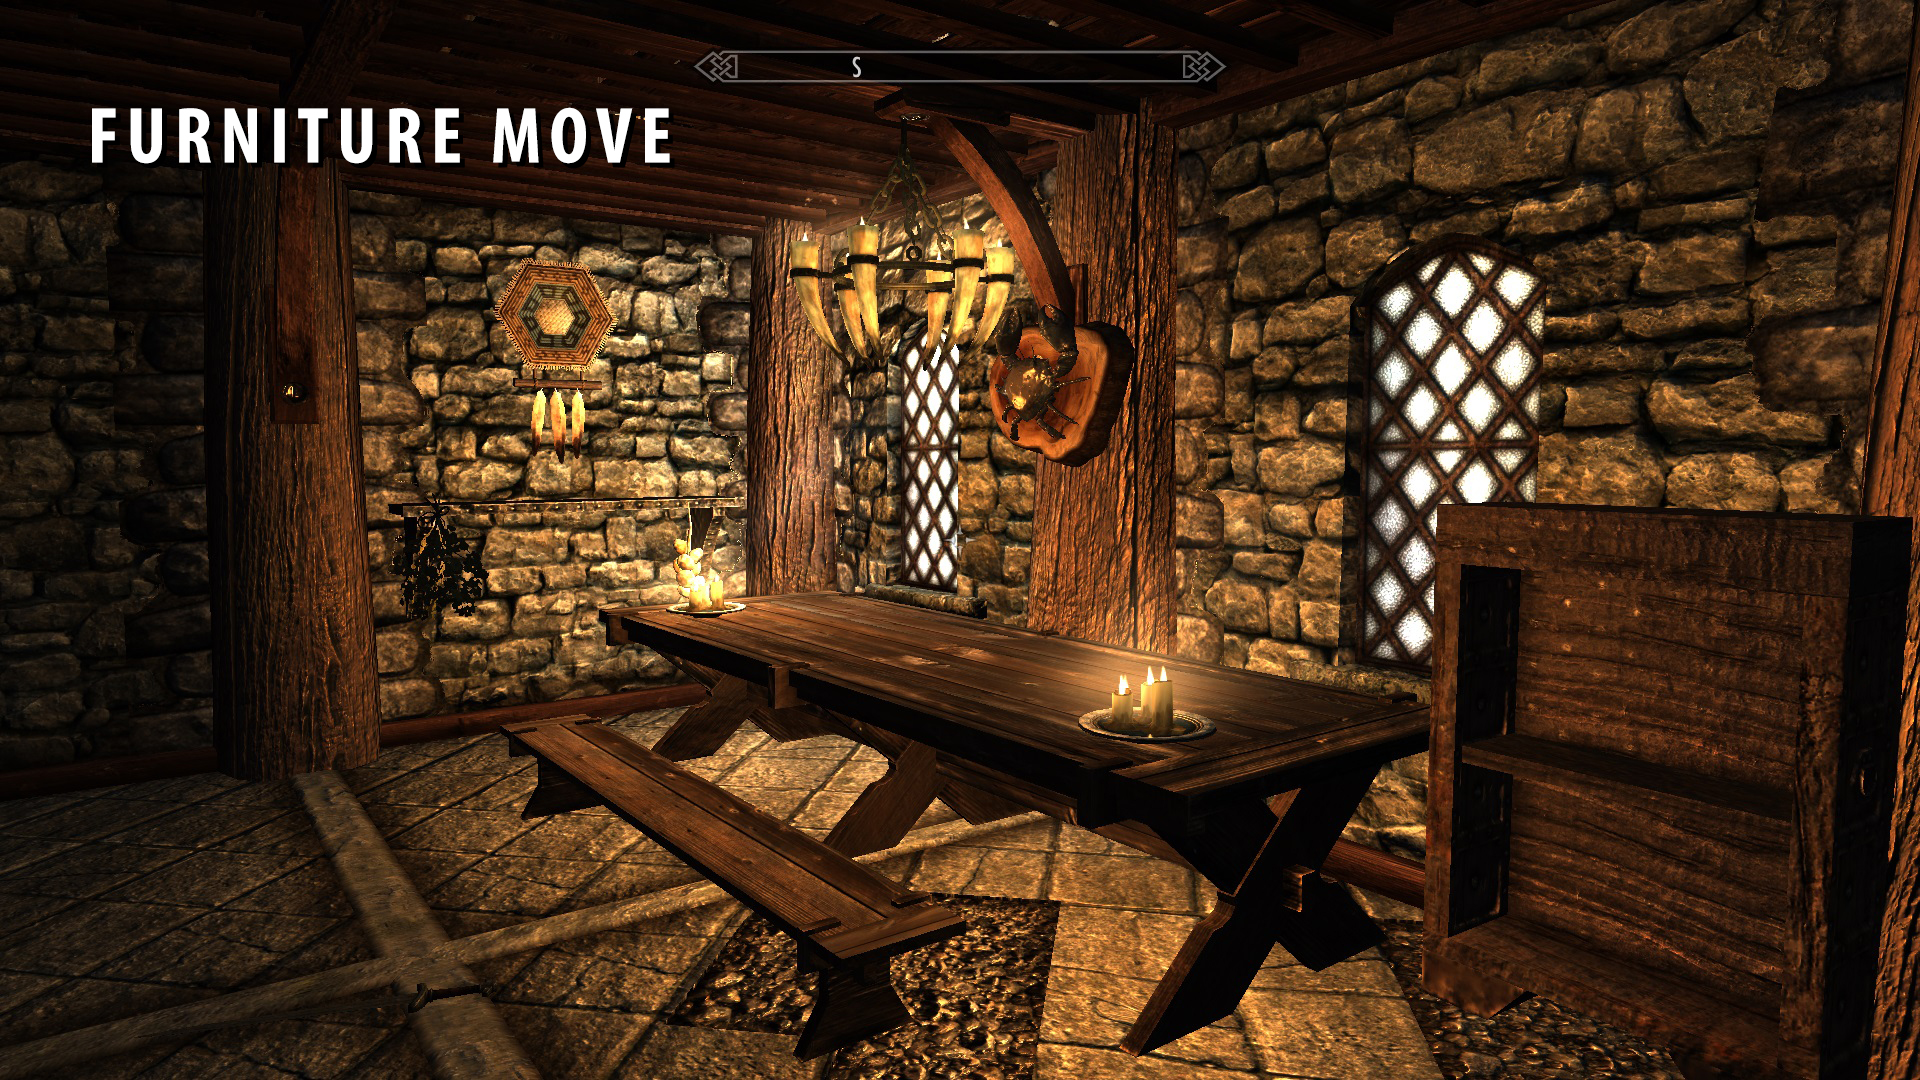 Furniture Move Home Re Decorator Mod At Skyrim Nexus Mods And Community